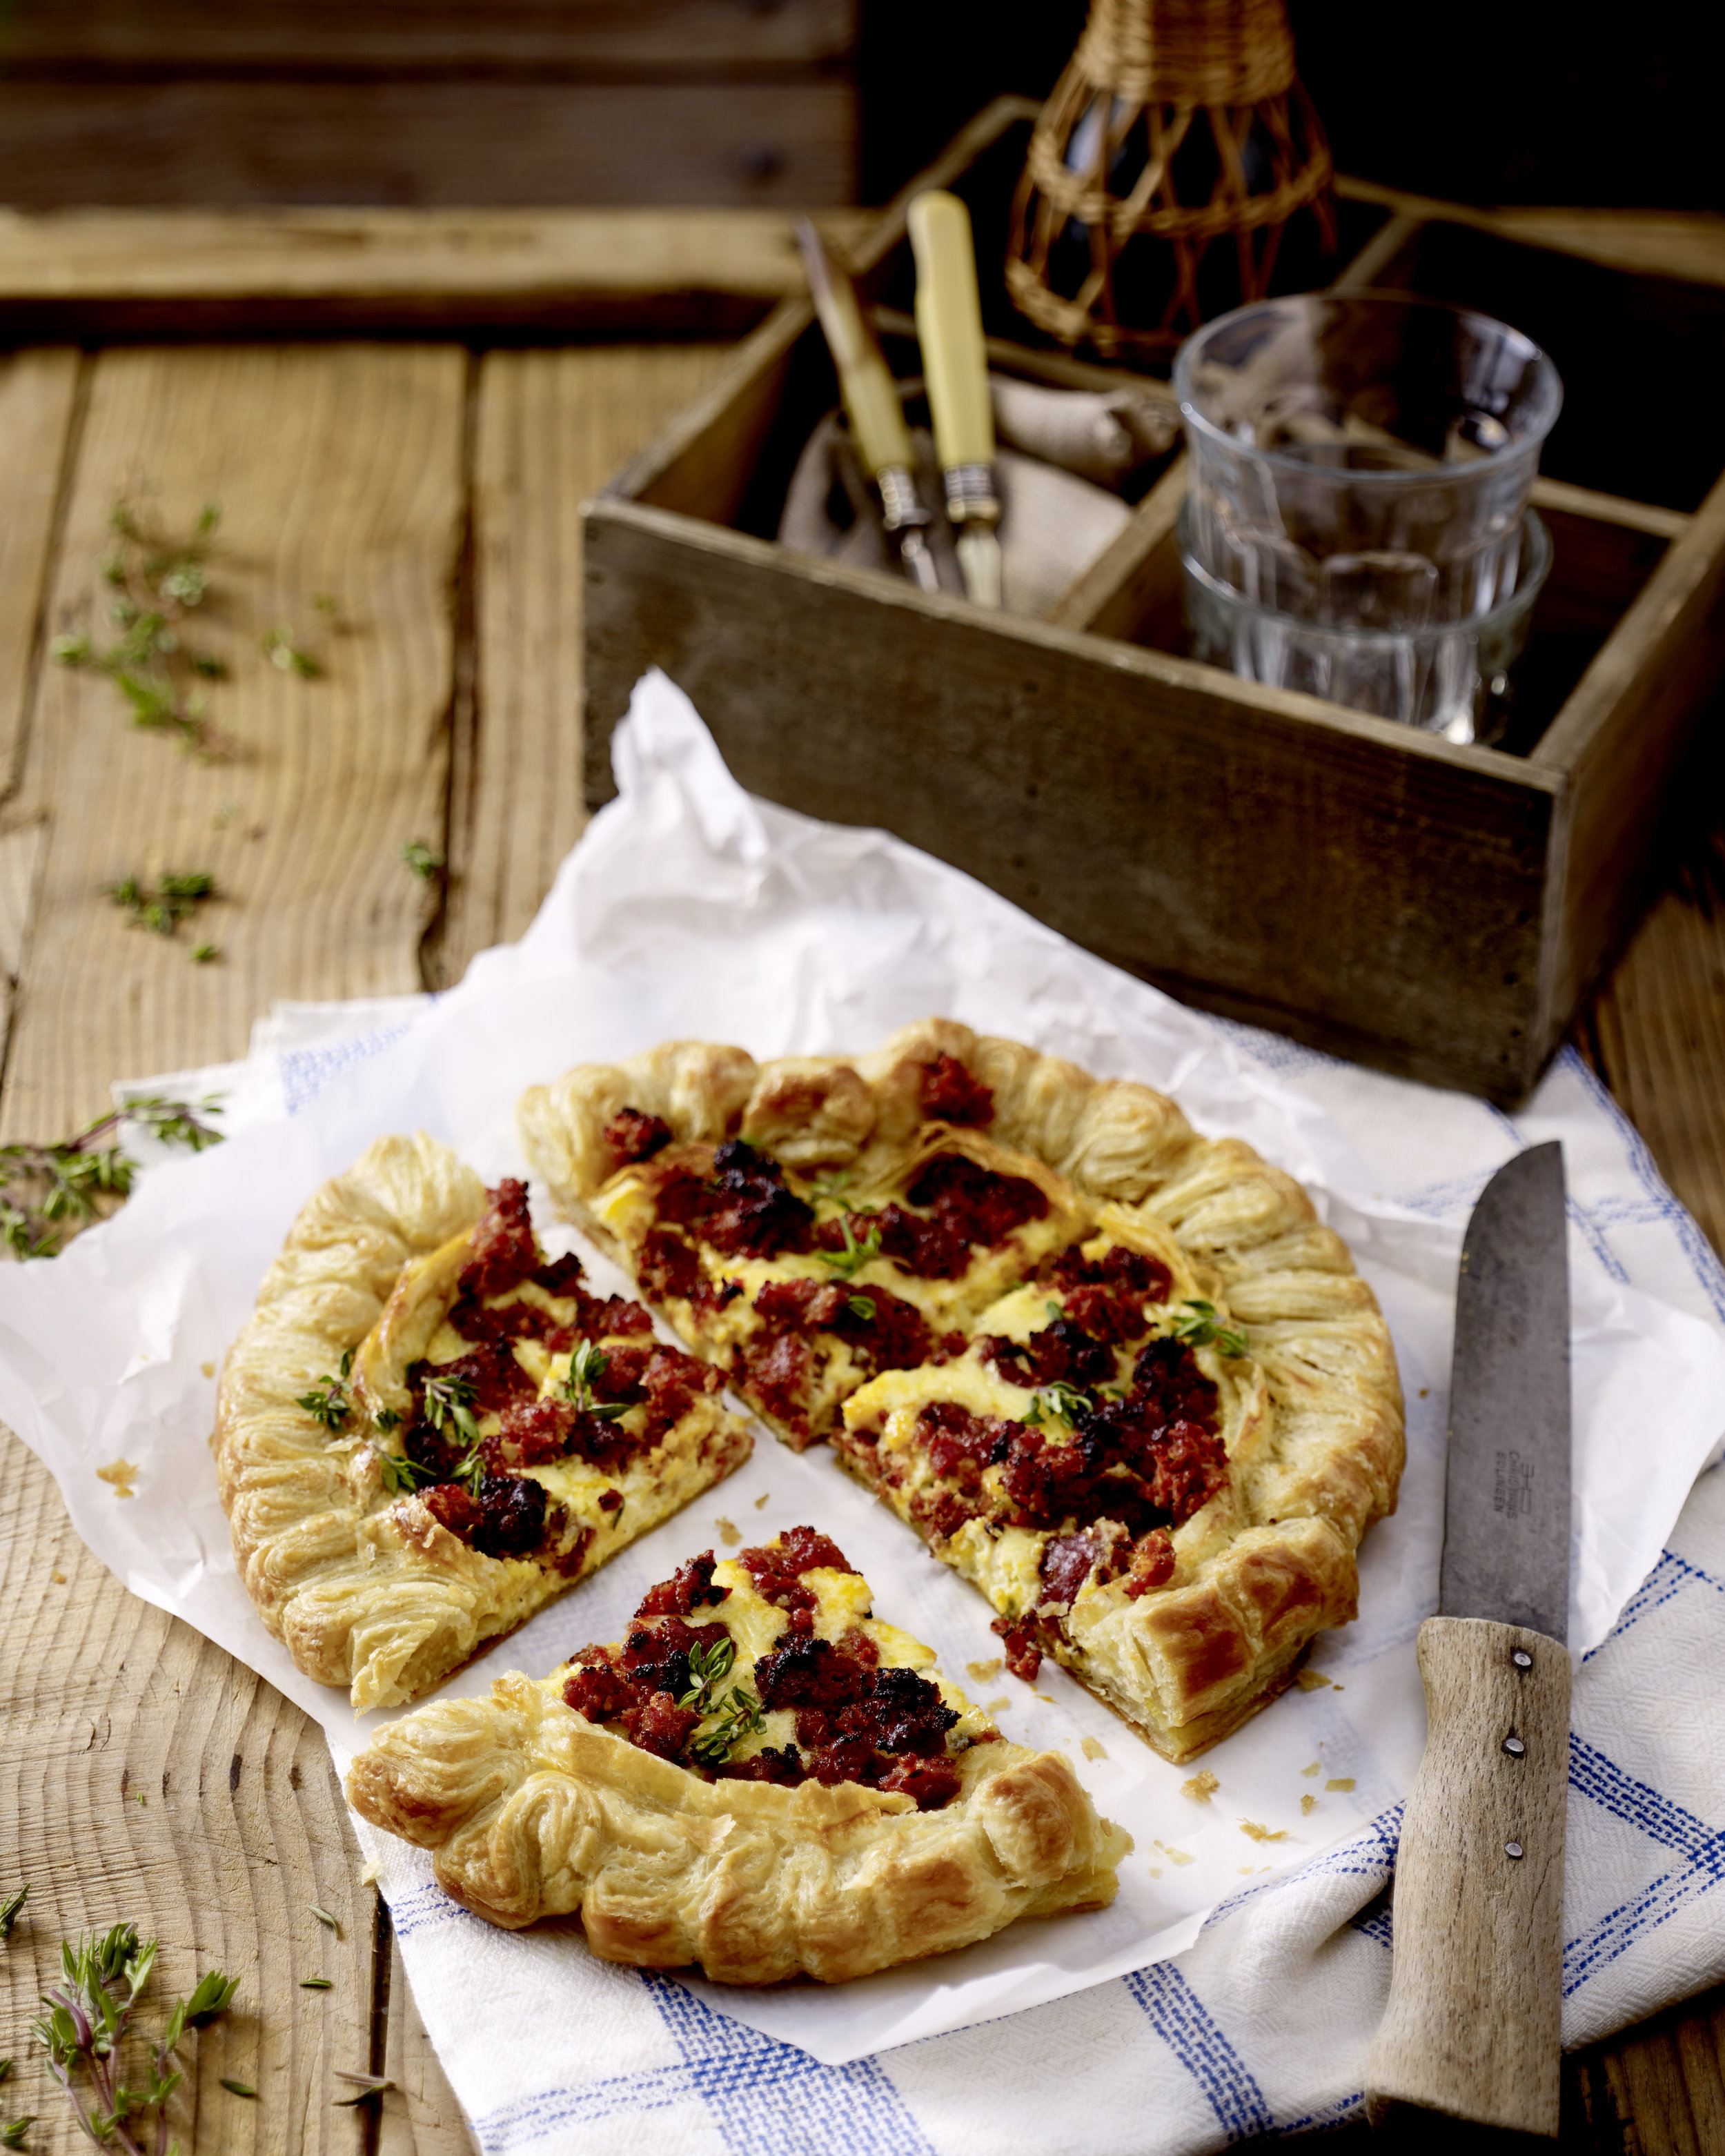 Golden pastry topped with succulent sausage meat in this delicious tart makes a tasty supper dish.